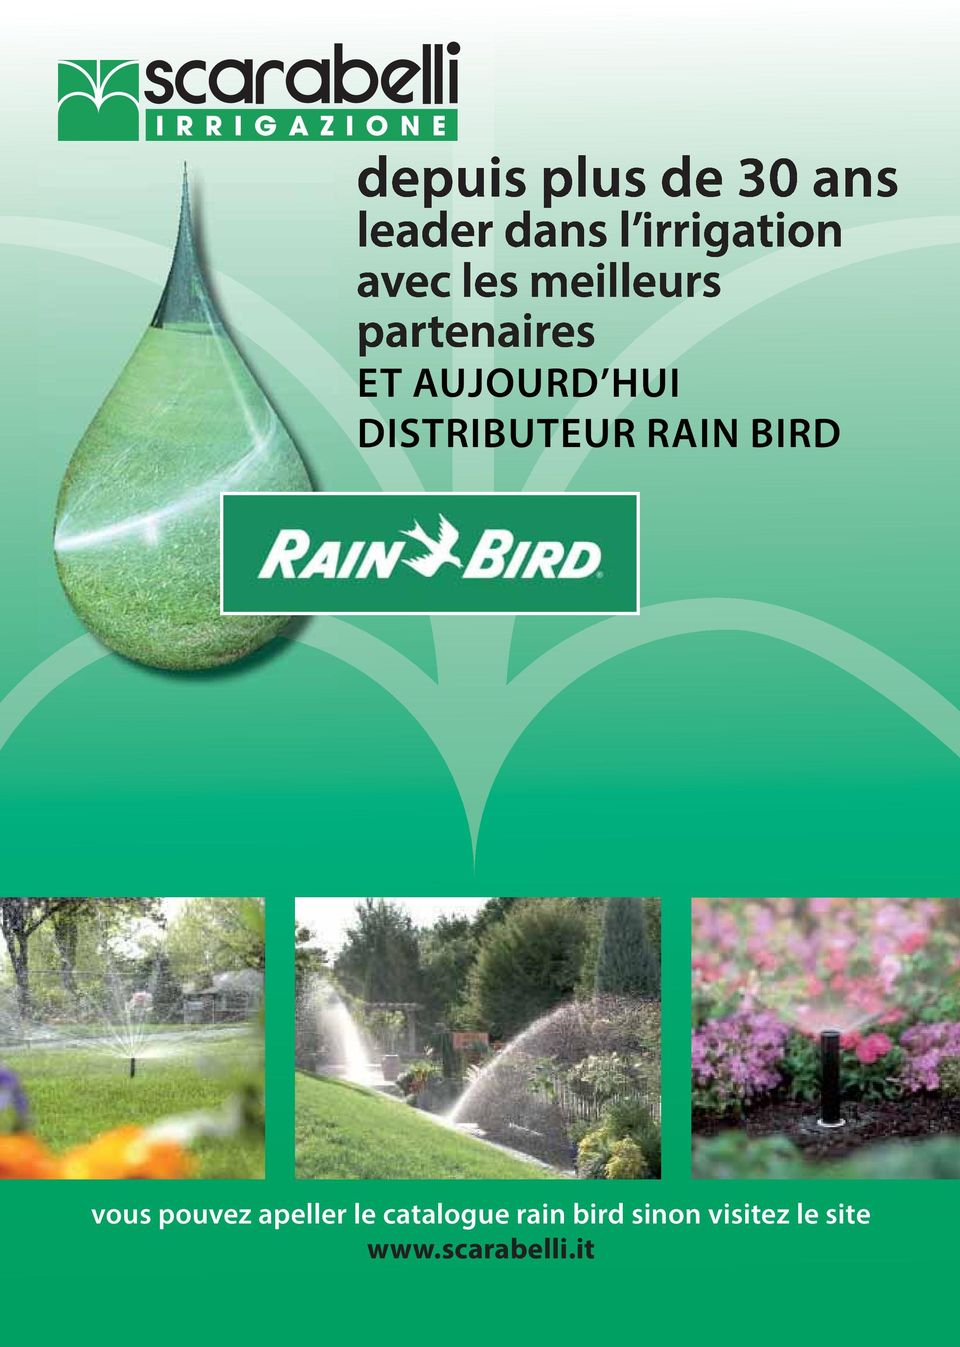 le catalogue rain bird sinon